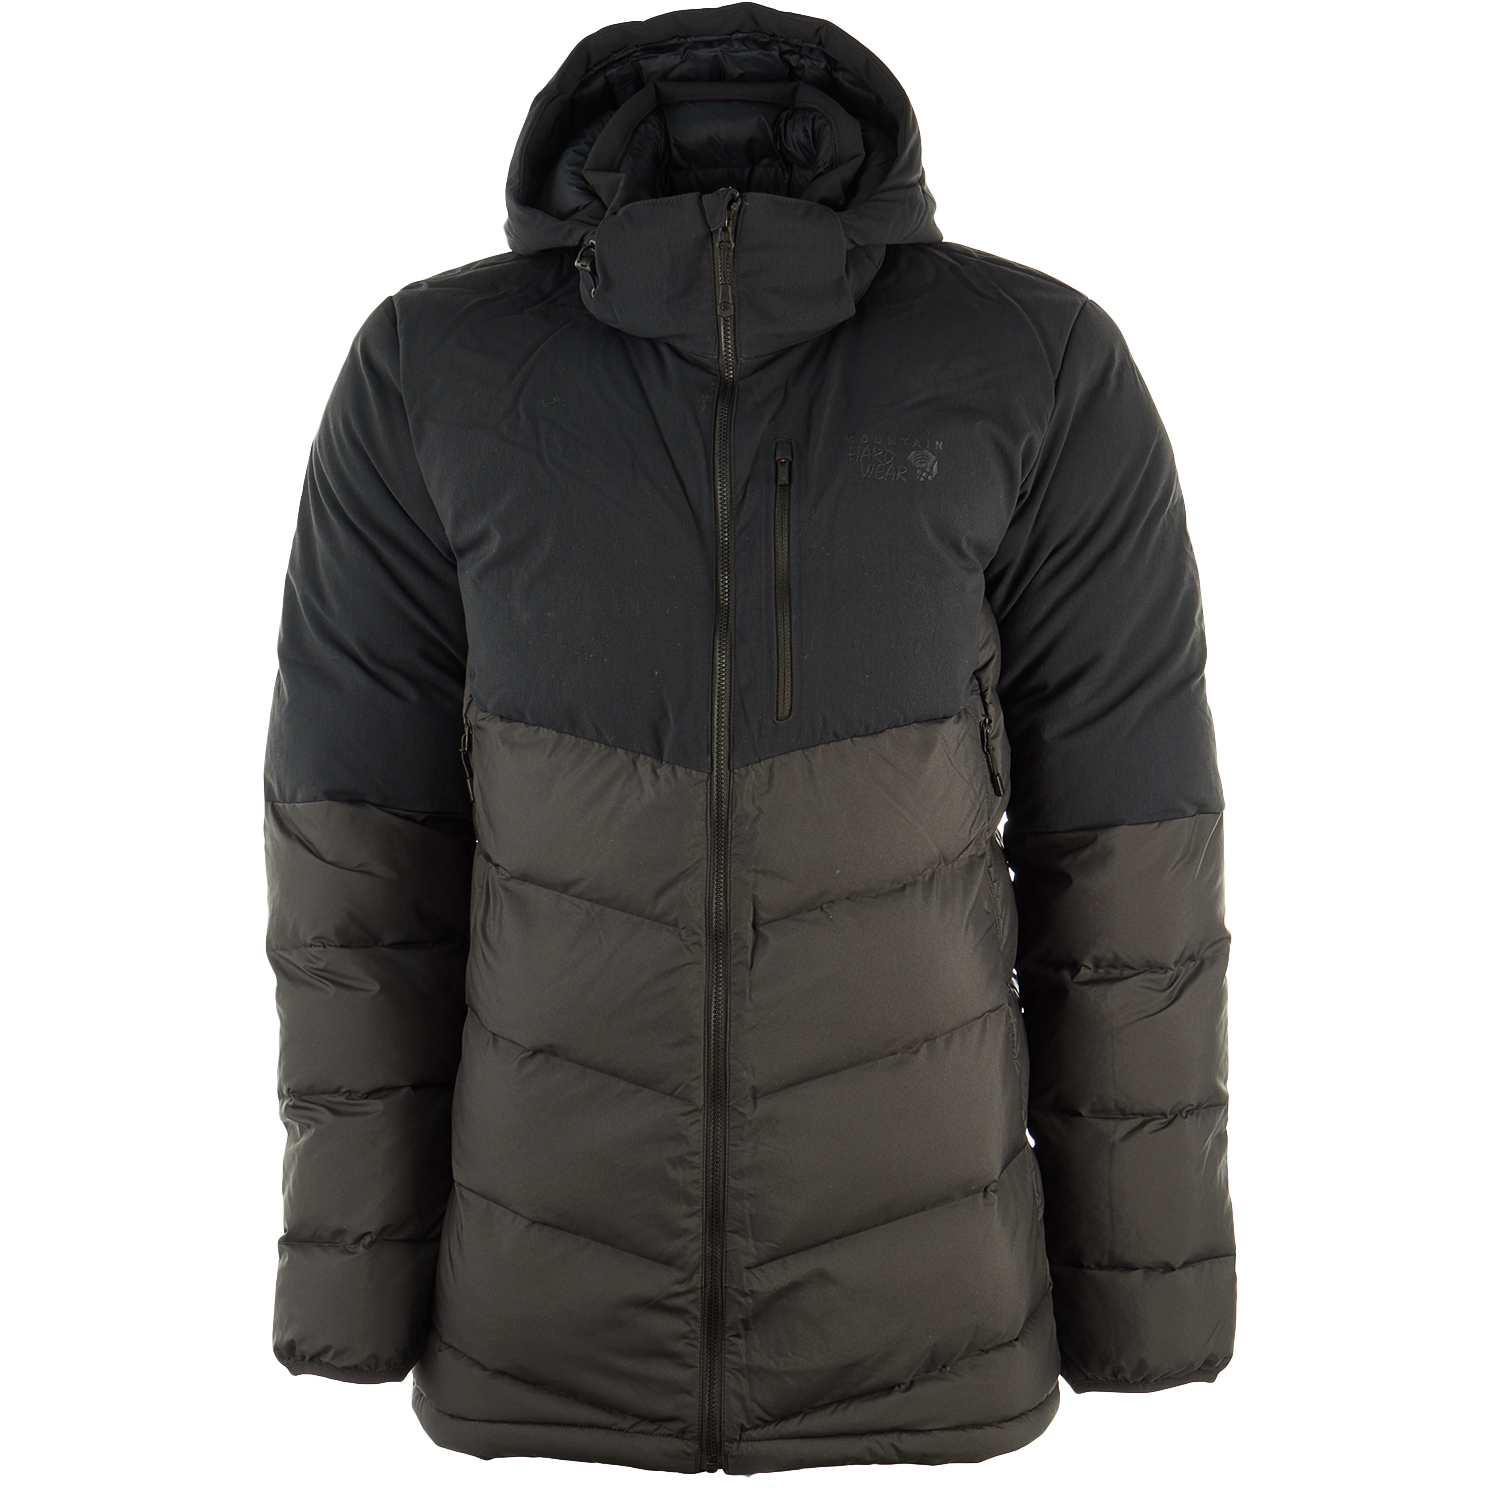 Mountain Hardwear Thermist Coat Hooded Insulated Down Jacket - Mens